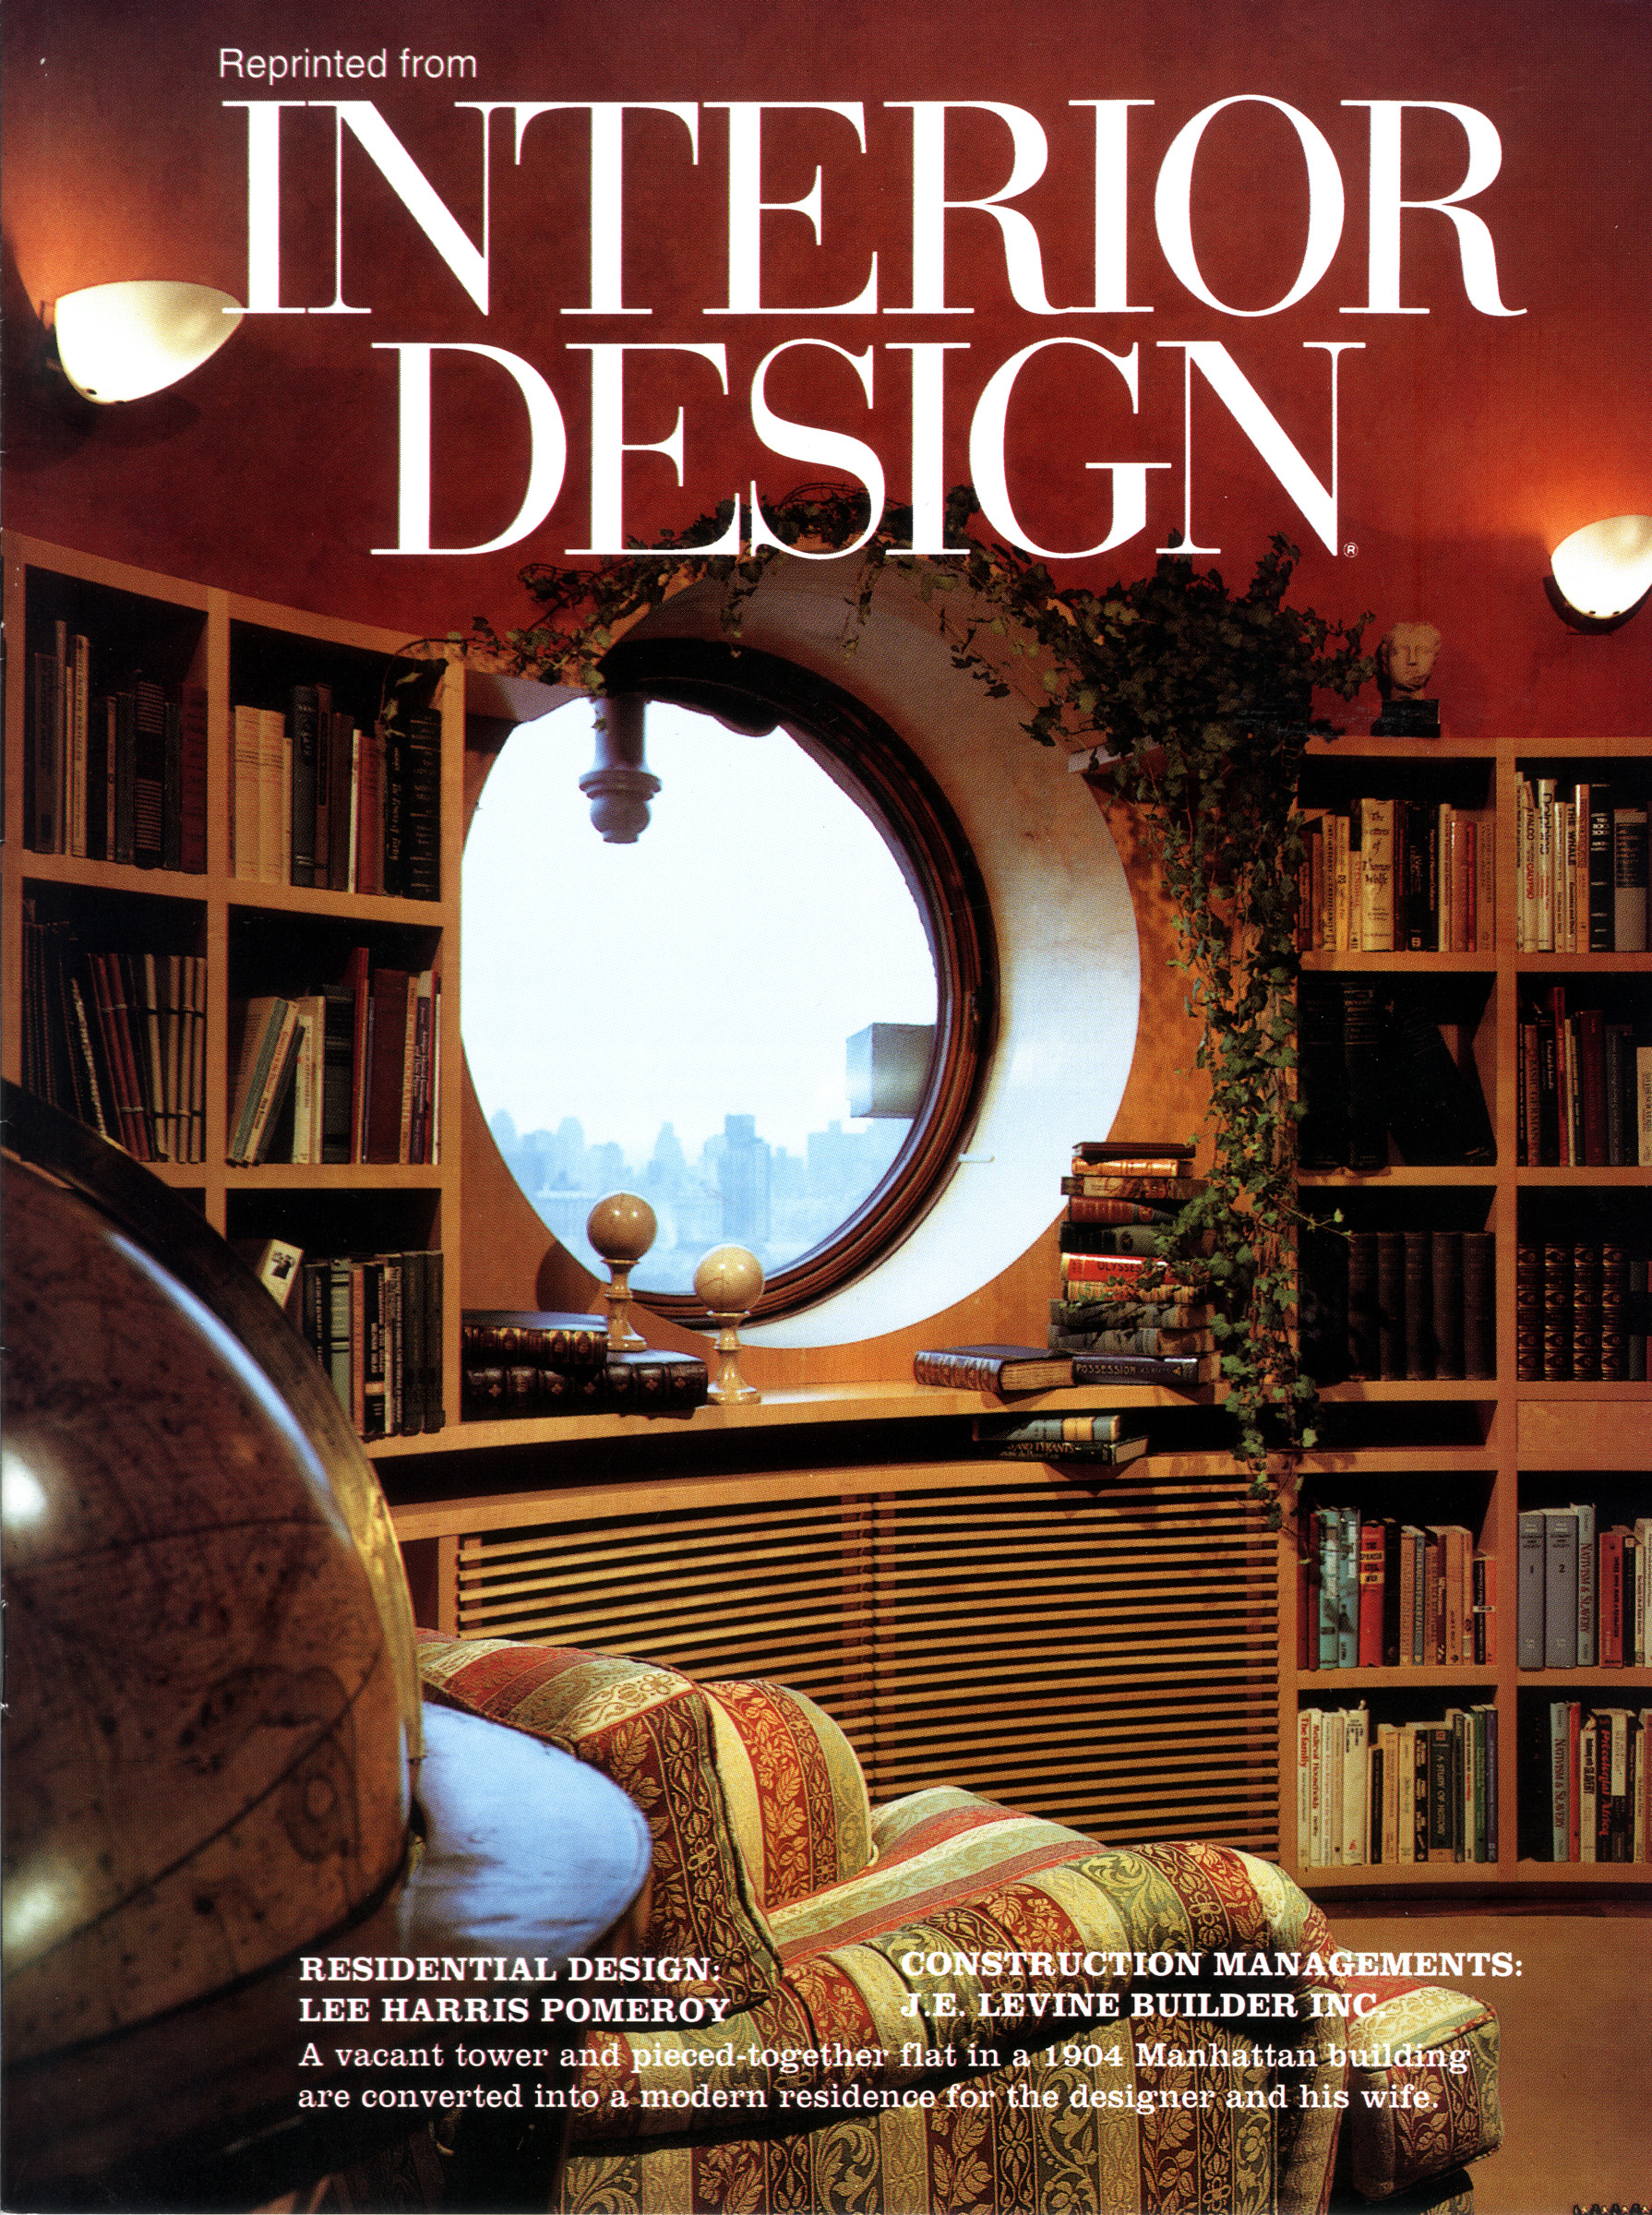 Residential Design by Lee Harris Pomeroy